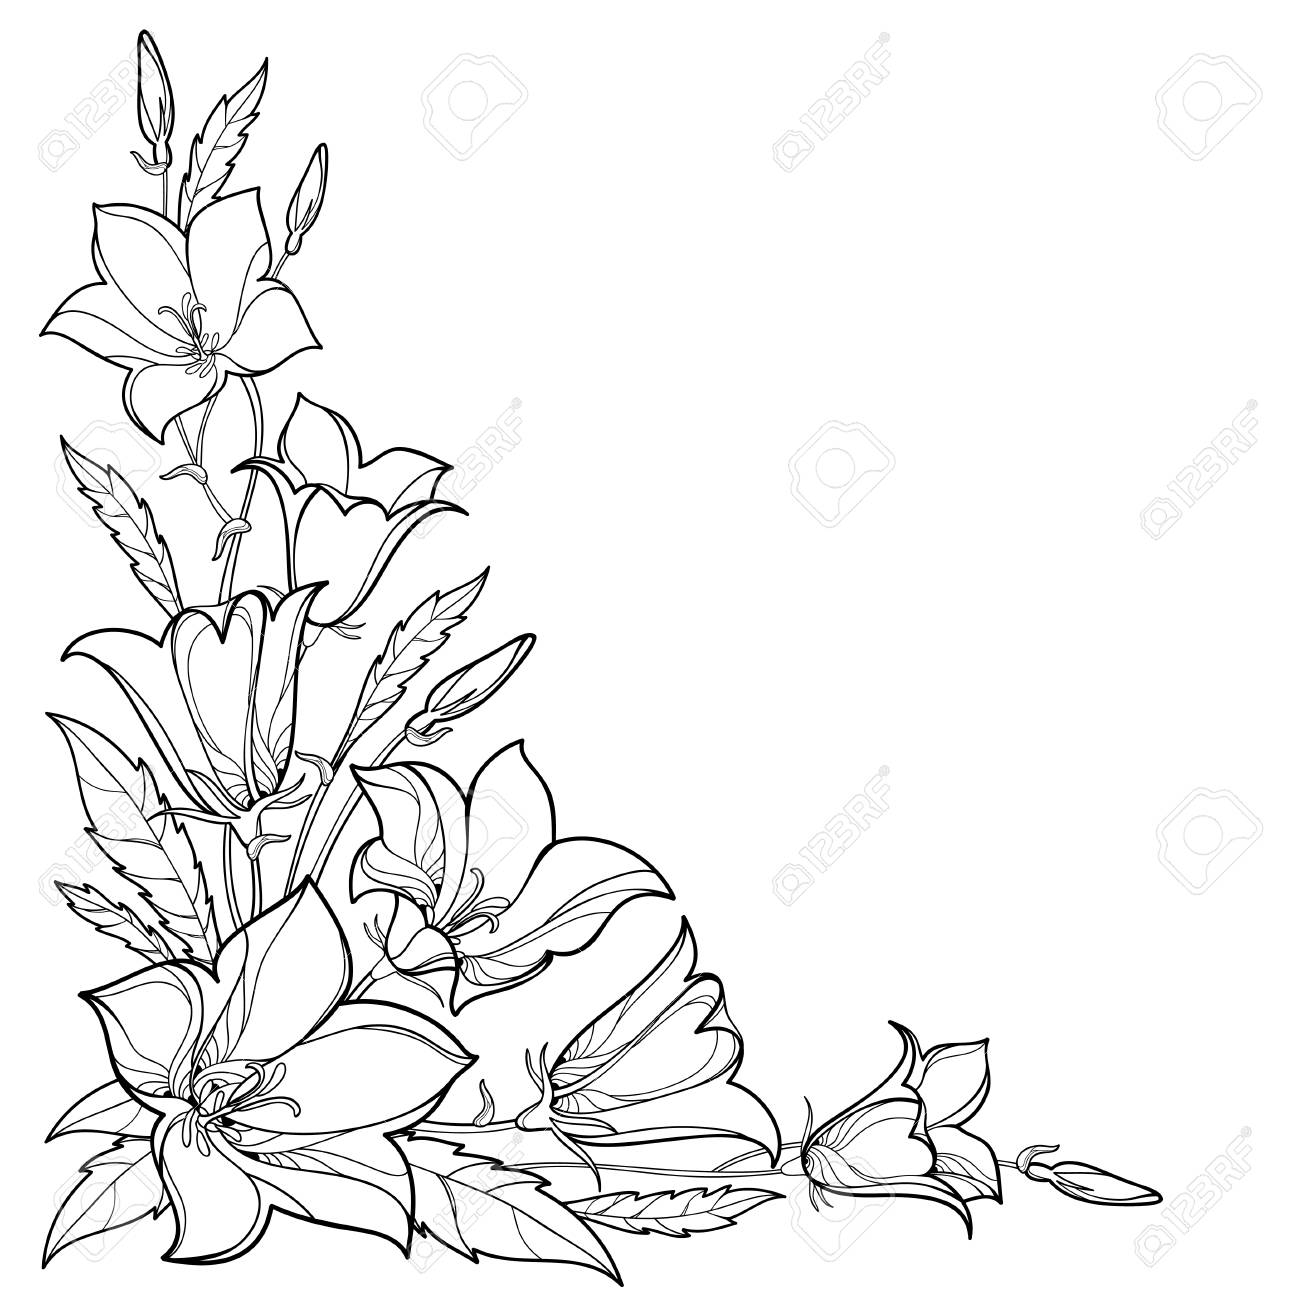 Corner bouquet with outline flower, leaf and bud in black isolated..